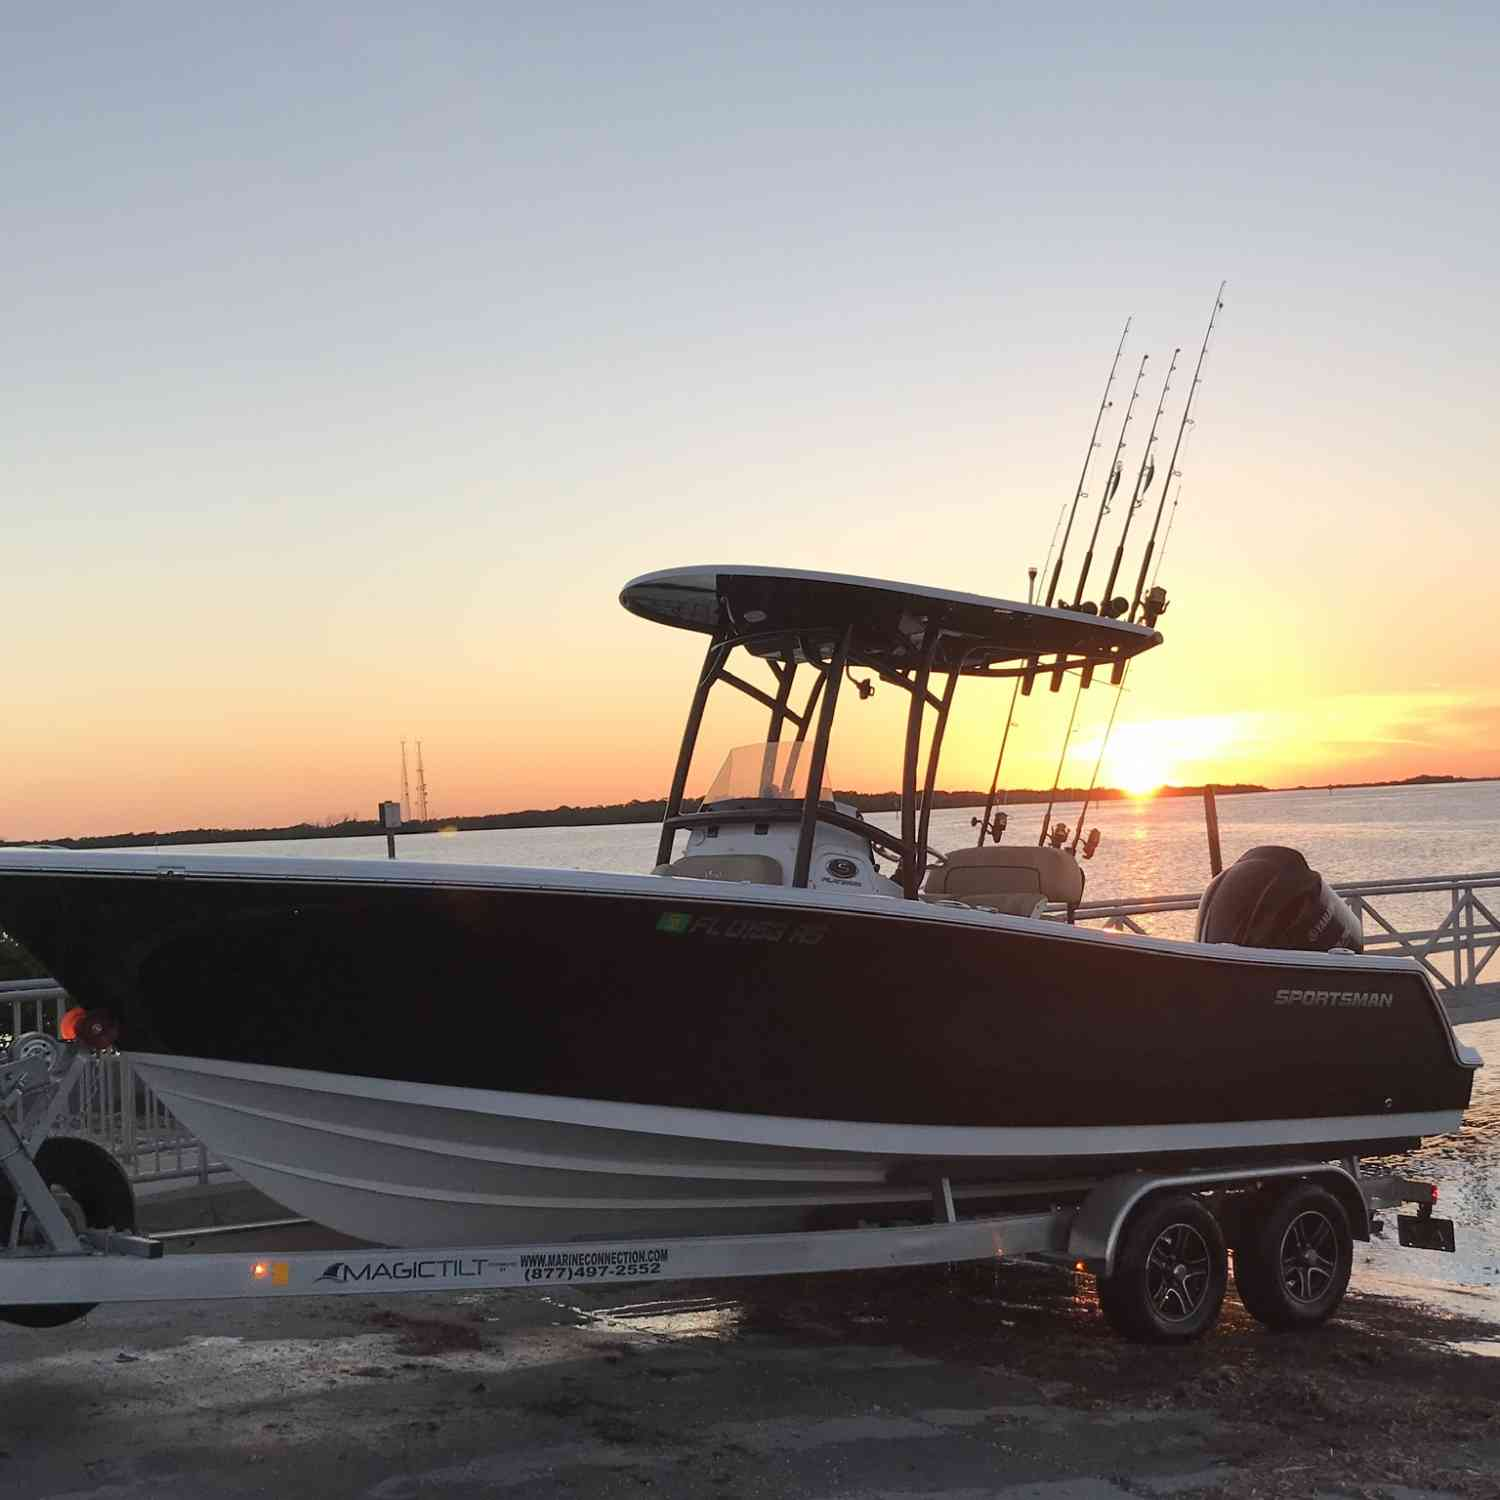 Title: After a hard days work!! - On board their Sportsman Open 232 Center Console - Location: Tampa FL.. Participating in the Photo Contest #SportsmanMarch2019